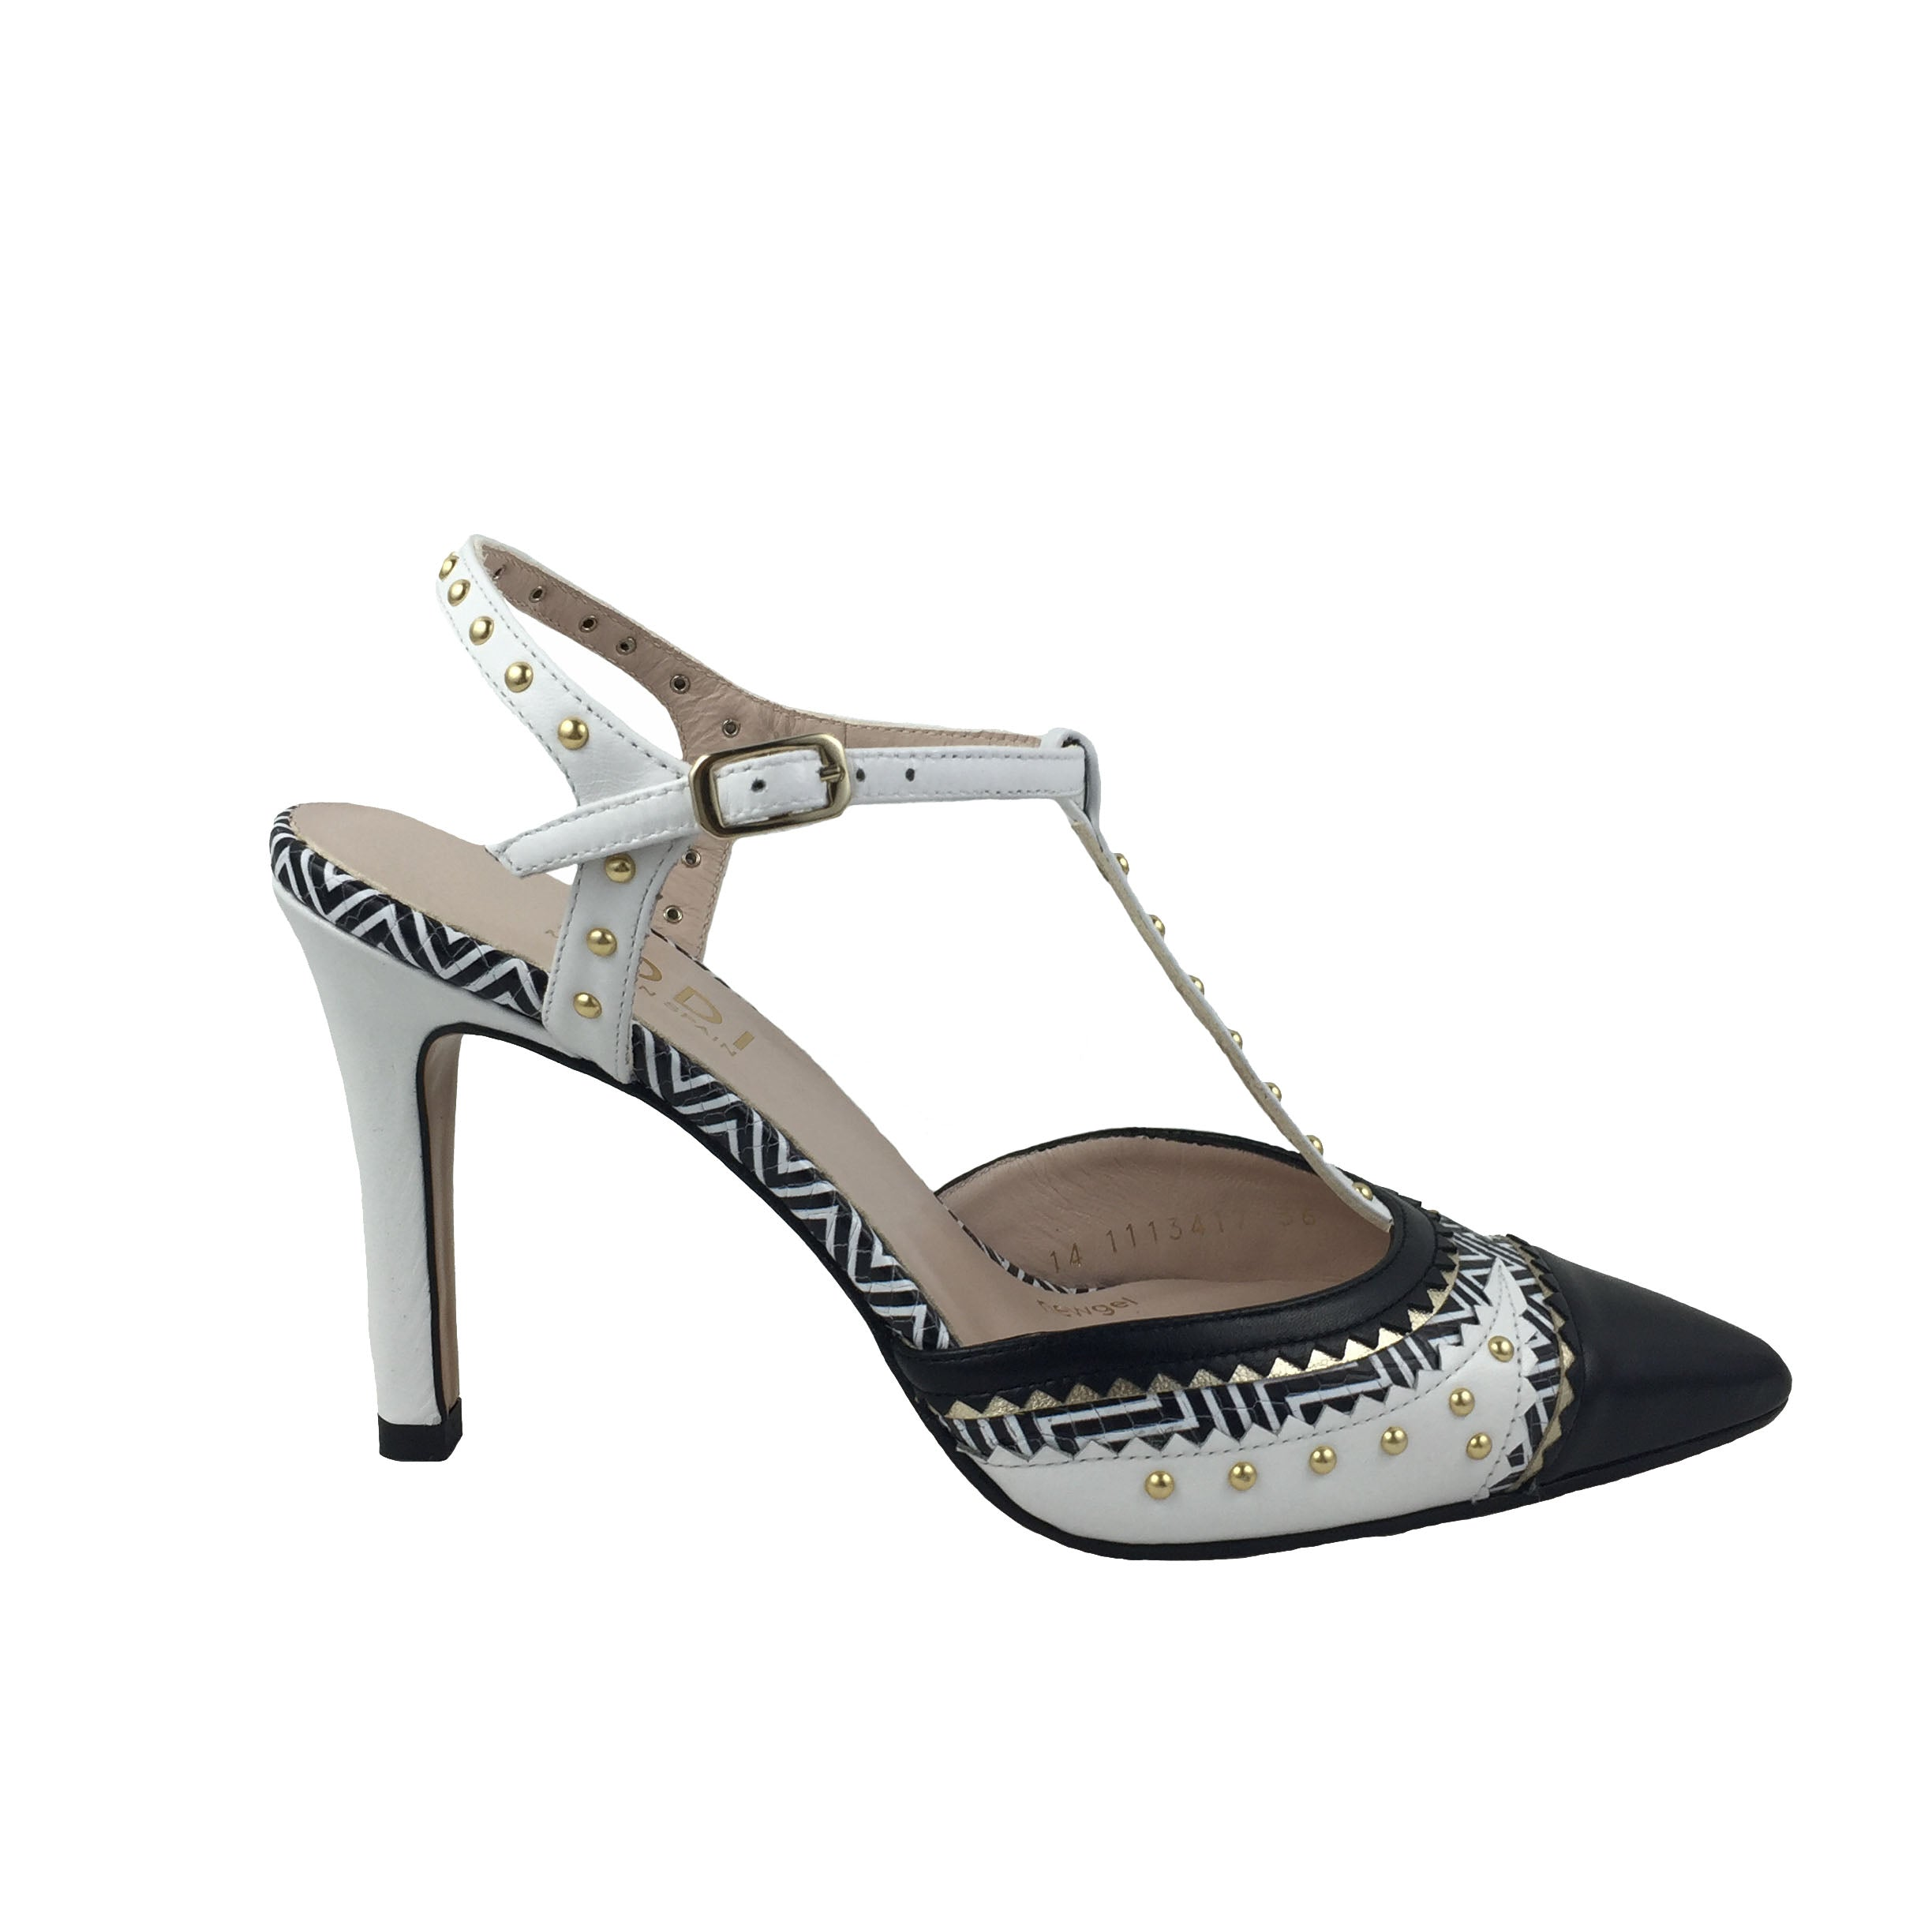 LODI Black and White Sling Back Court